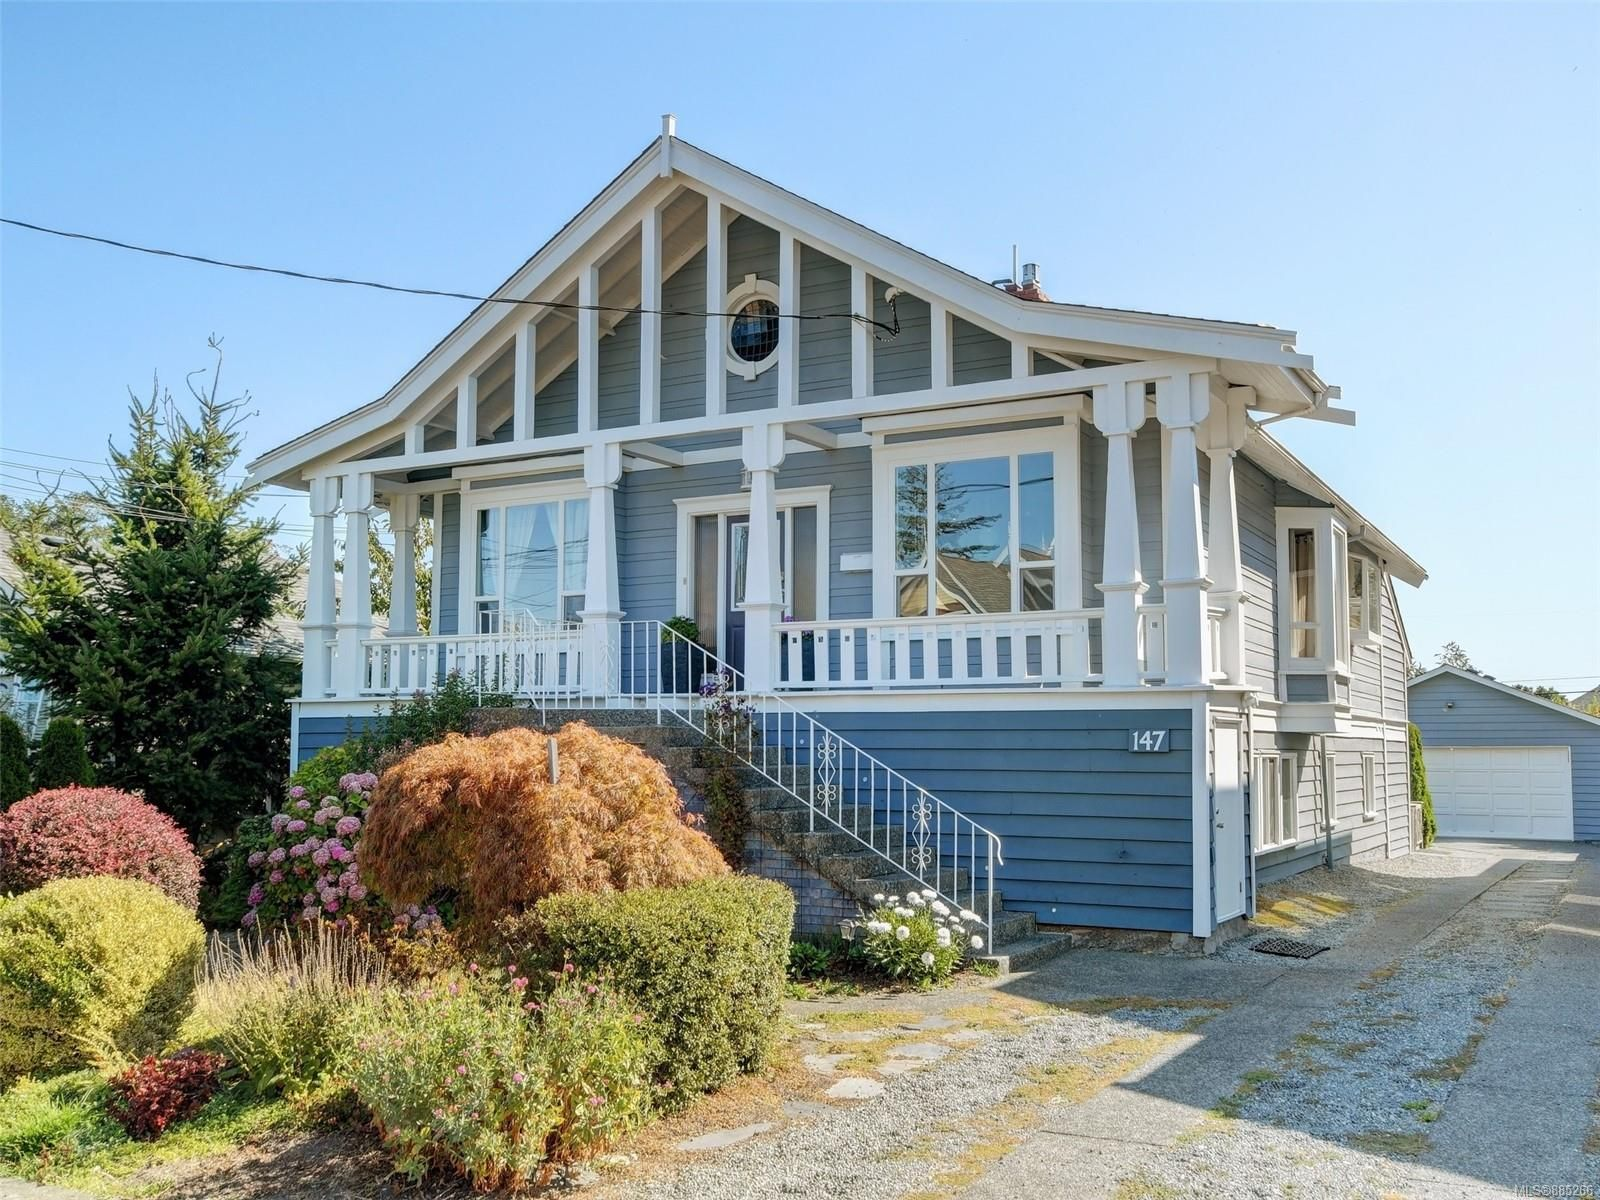 Front of house - located on one of the nicest streets in Fairfield. Steps to the ocean